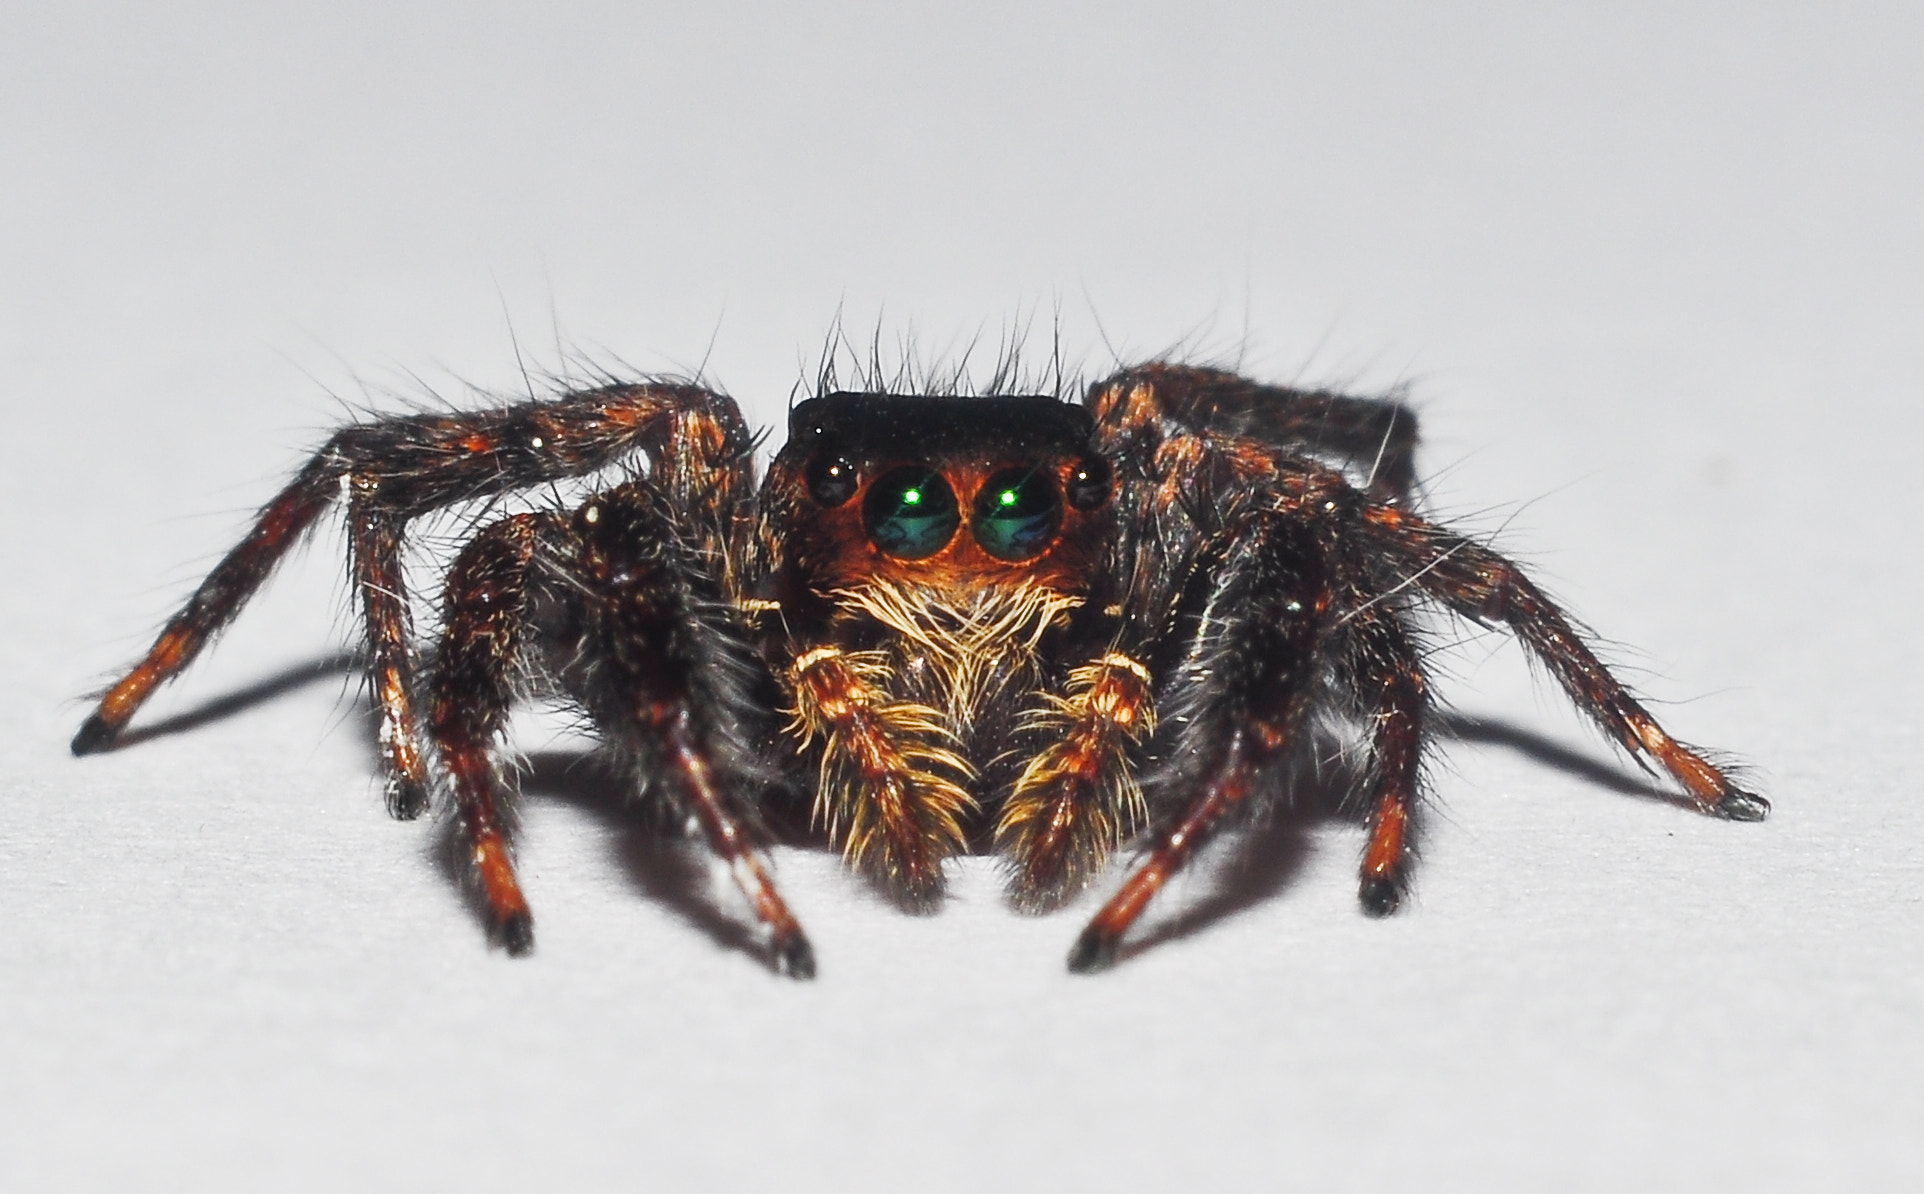 Photograph the jumping spider by Arif Othman on 500px